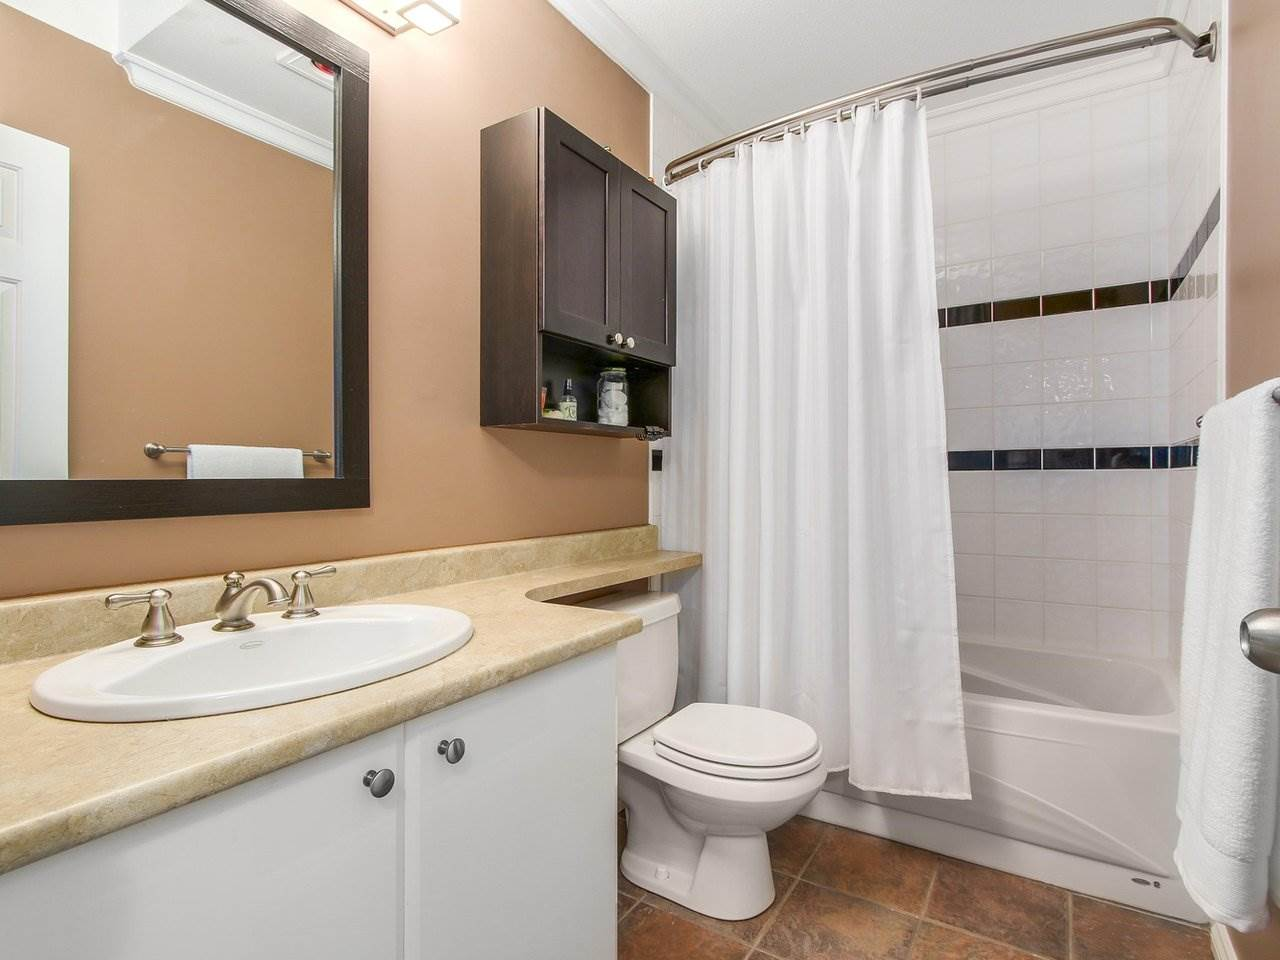 Photo 10: 304 8120 BENNETT Road in Richmond: Brighouse South Condo for sale : MLS® # R2191205